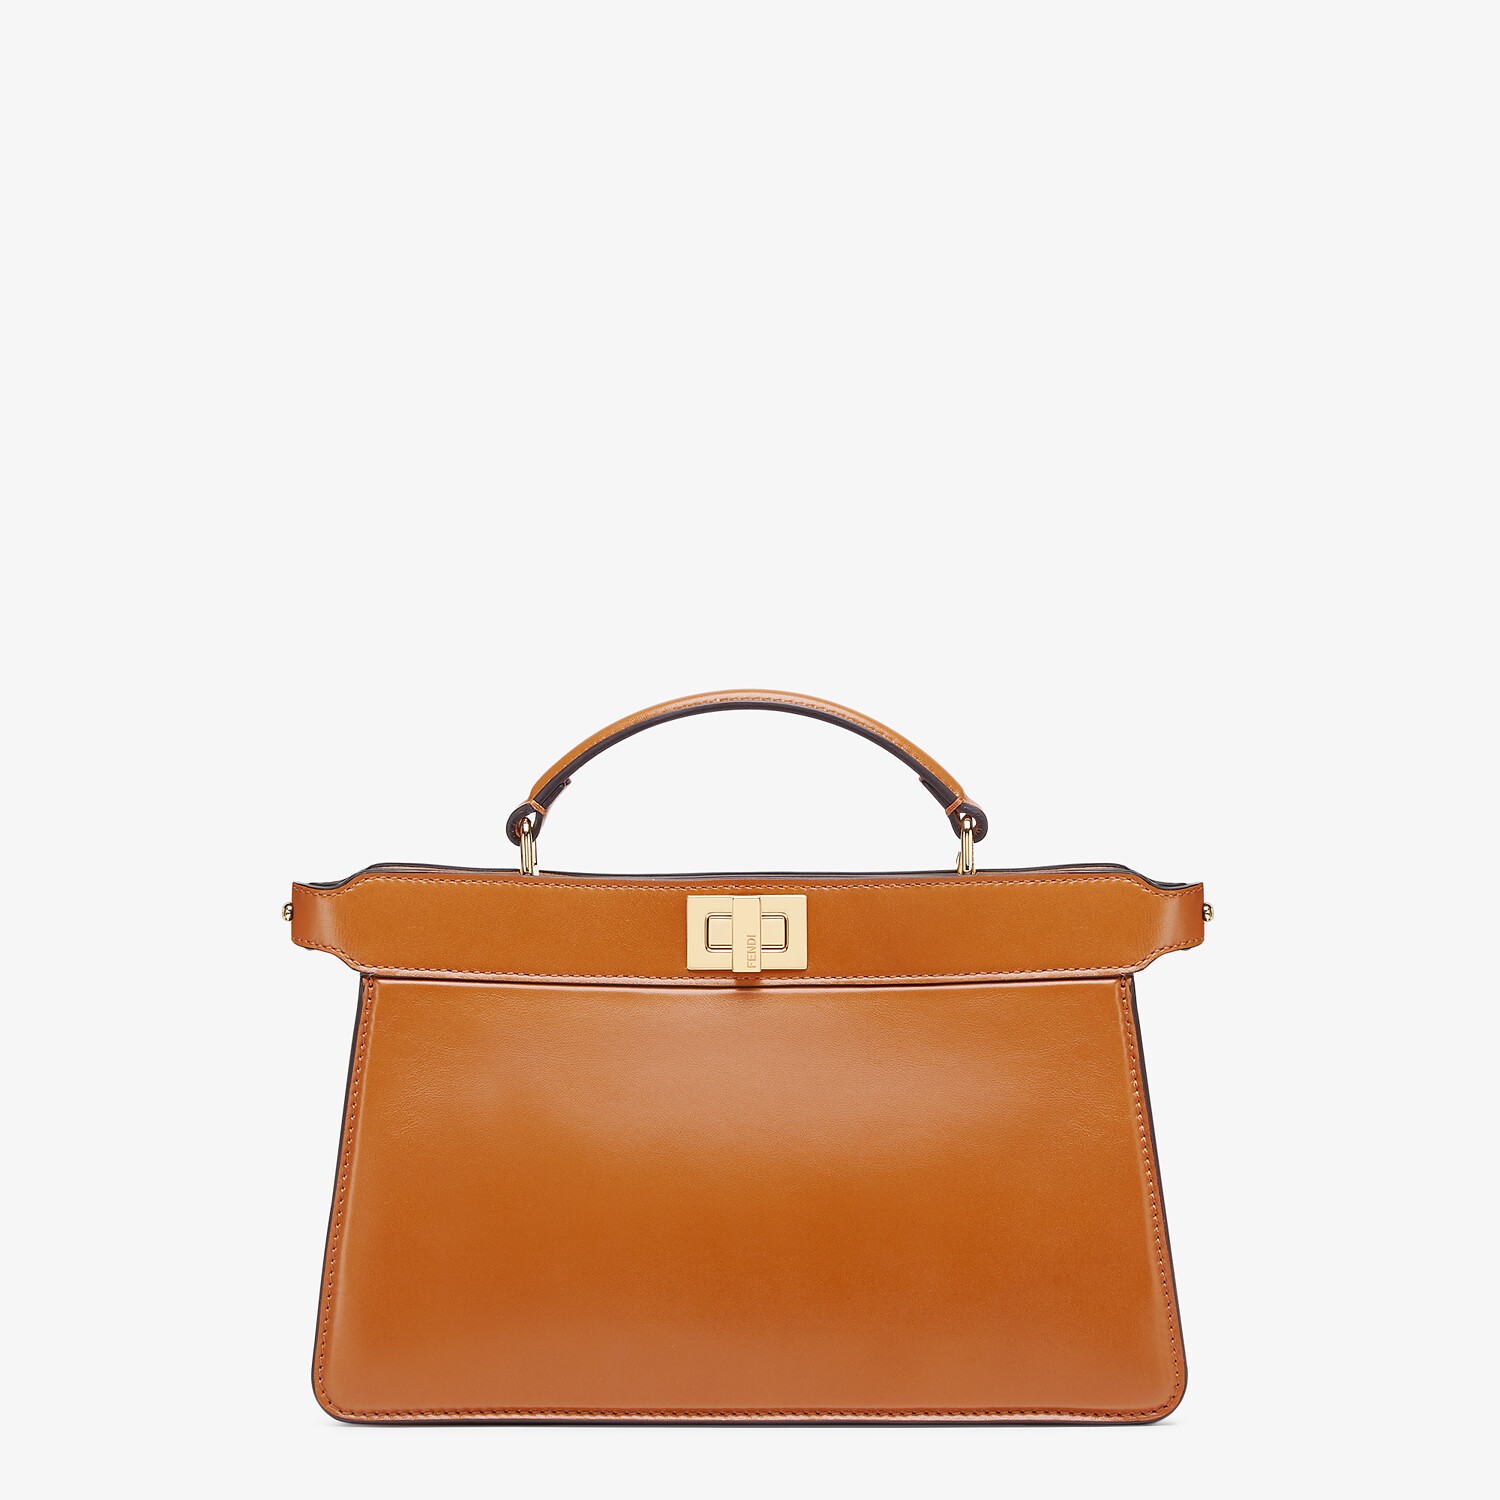 FENDI PEEKABOO ISEEU EAST-WEST - Brown leather bag - view 1 detail